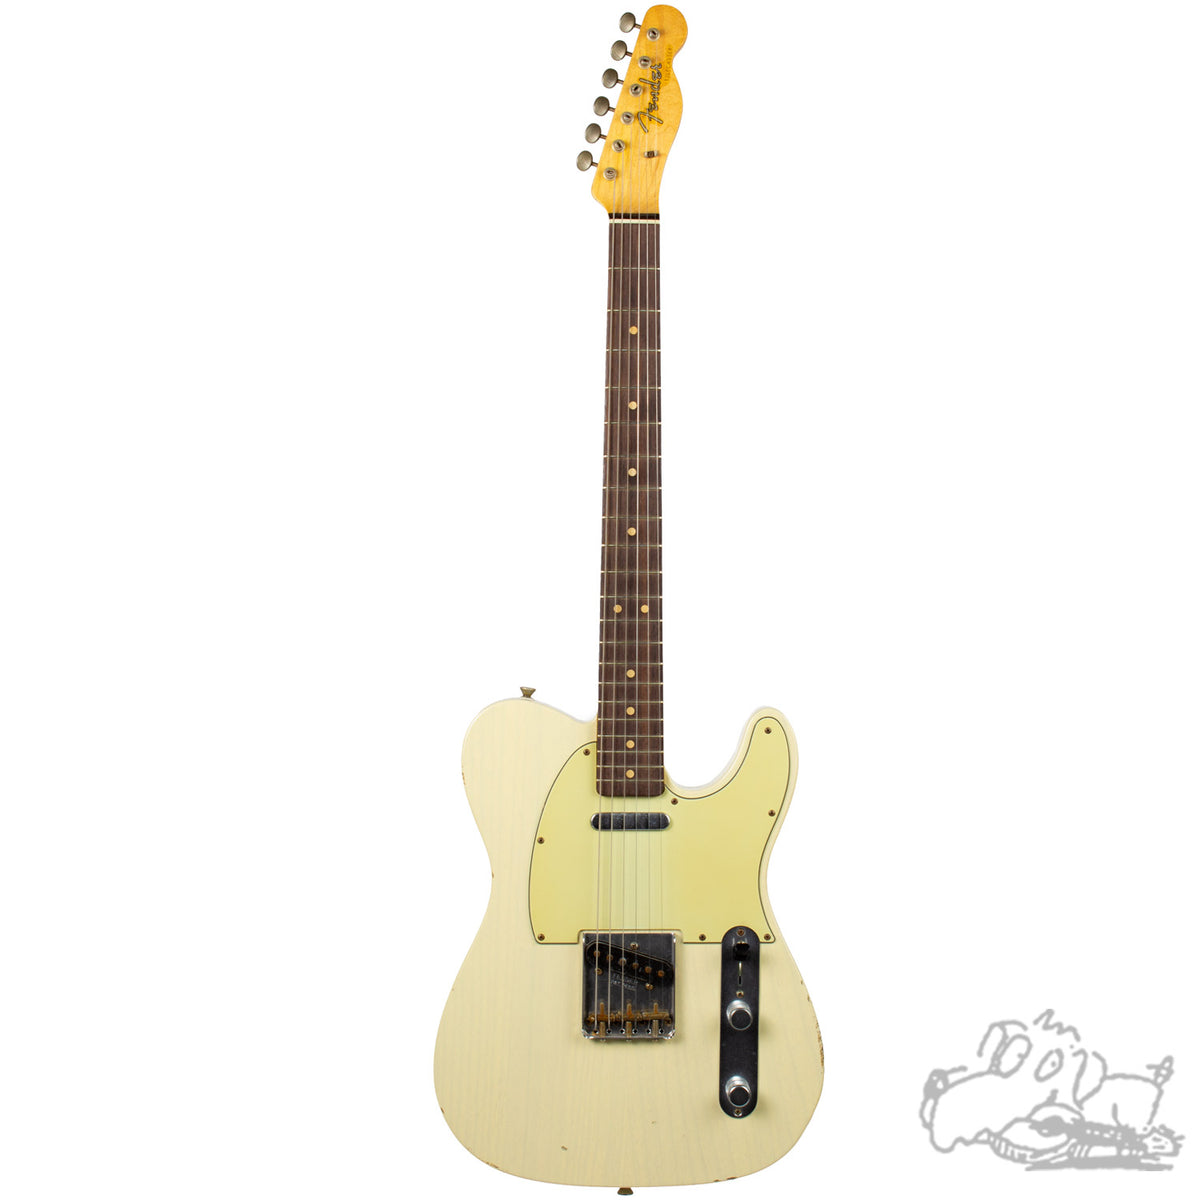 2006 Fender Custom Shop Telecaster '63 Relic